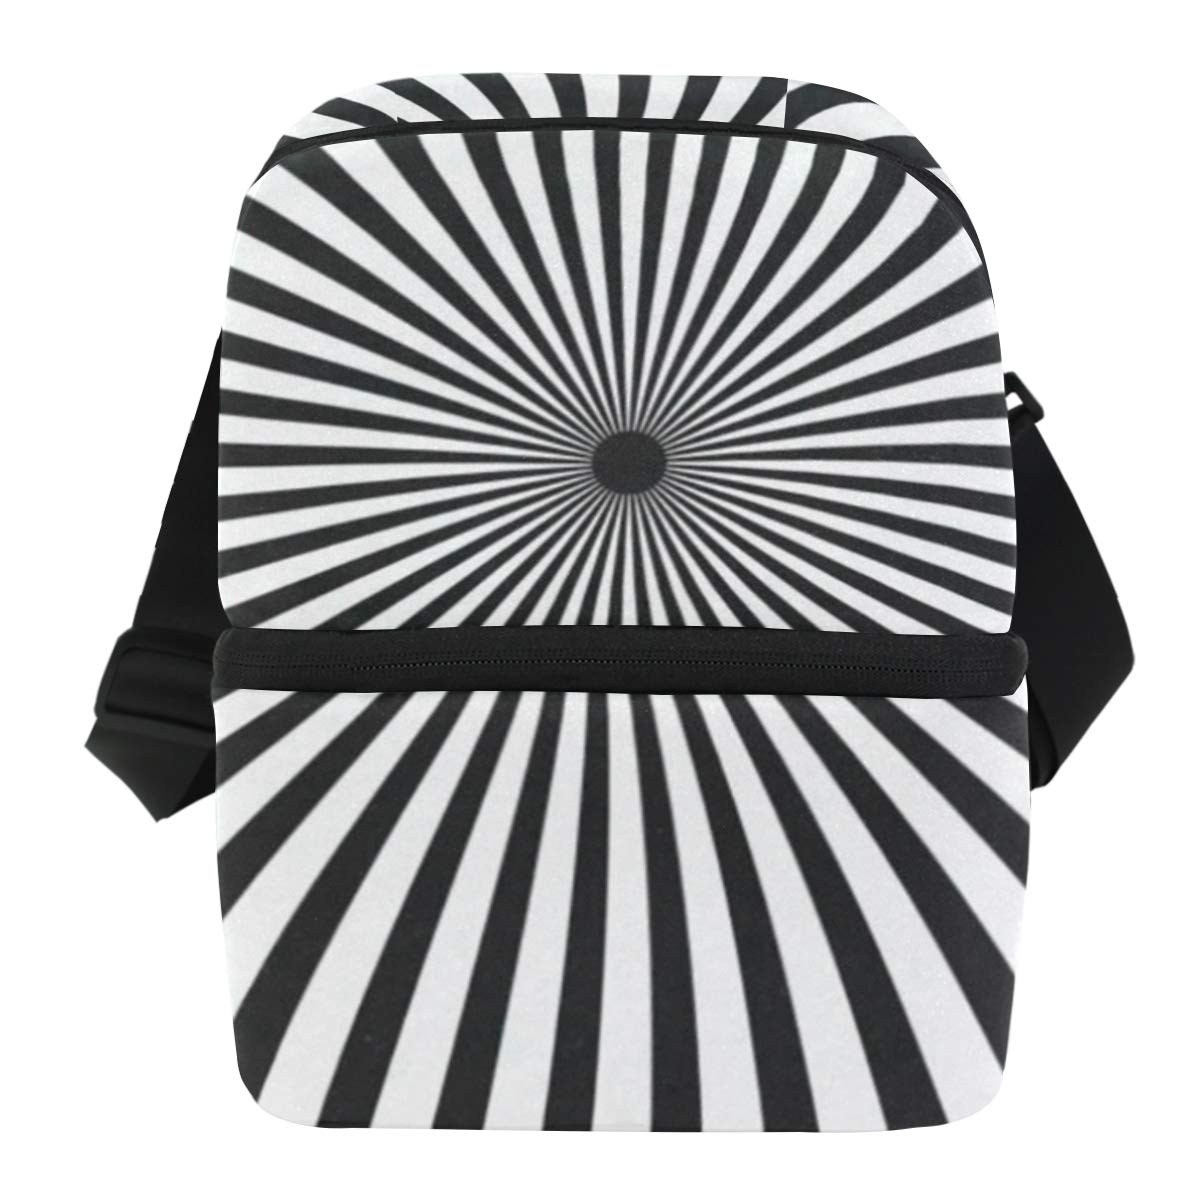 Lunch Bag Radiating Black And White Line Portable Cooler Bag Mens Leakproof Food Storage Zipper Tote Bags for Beach